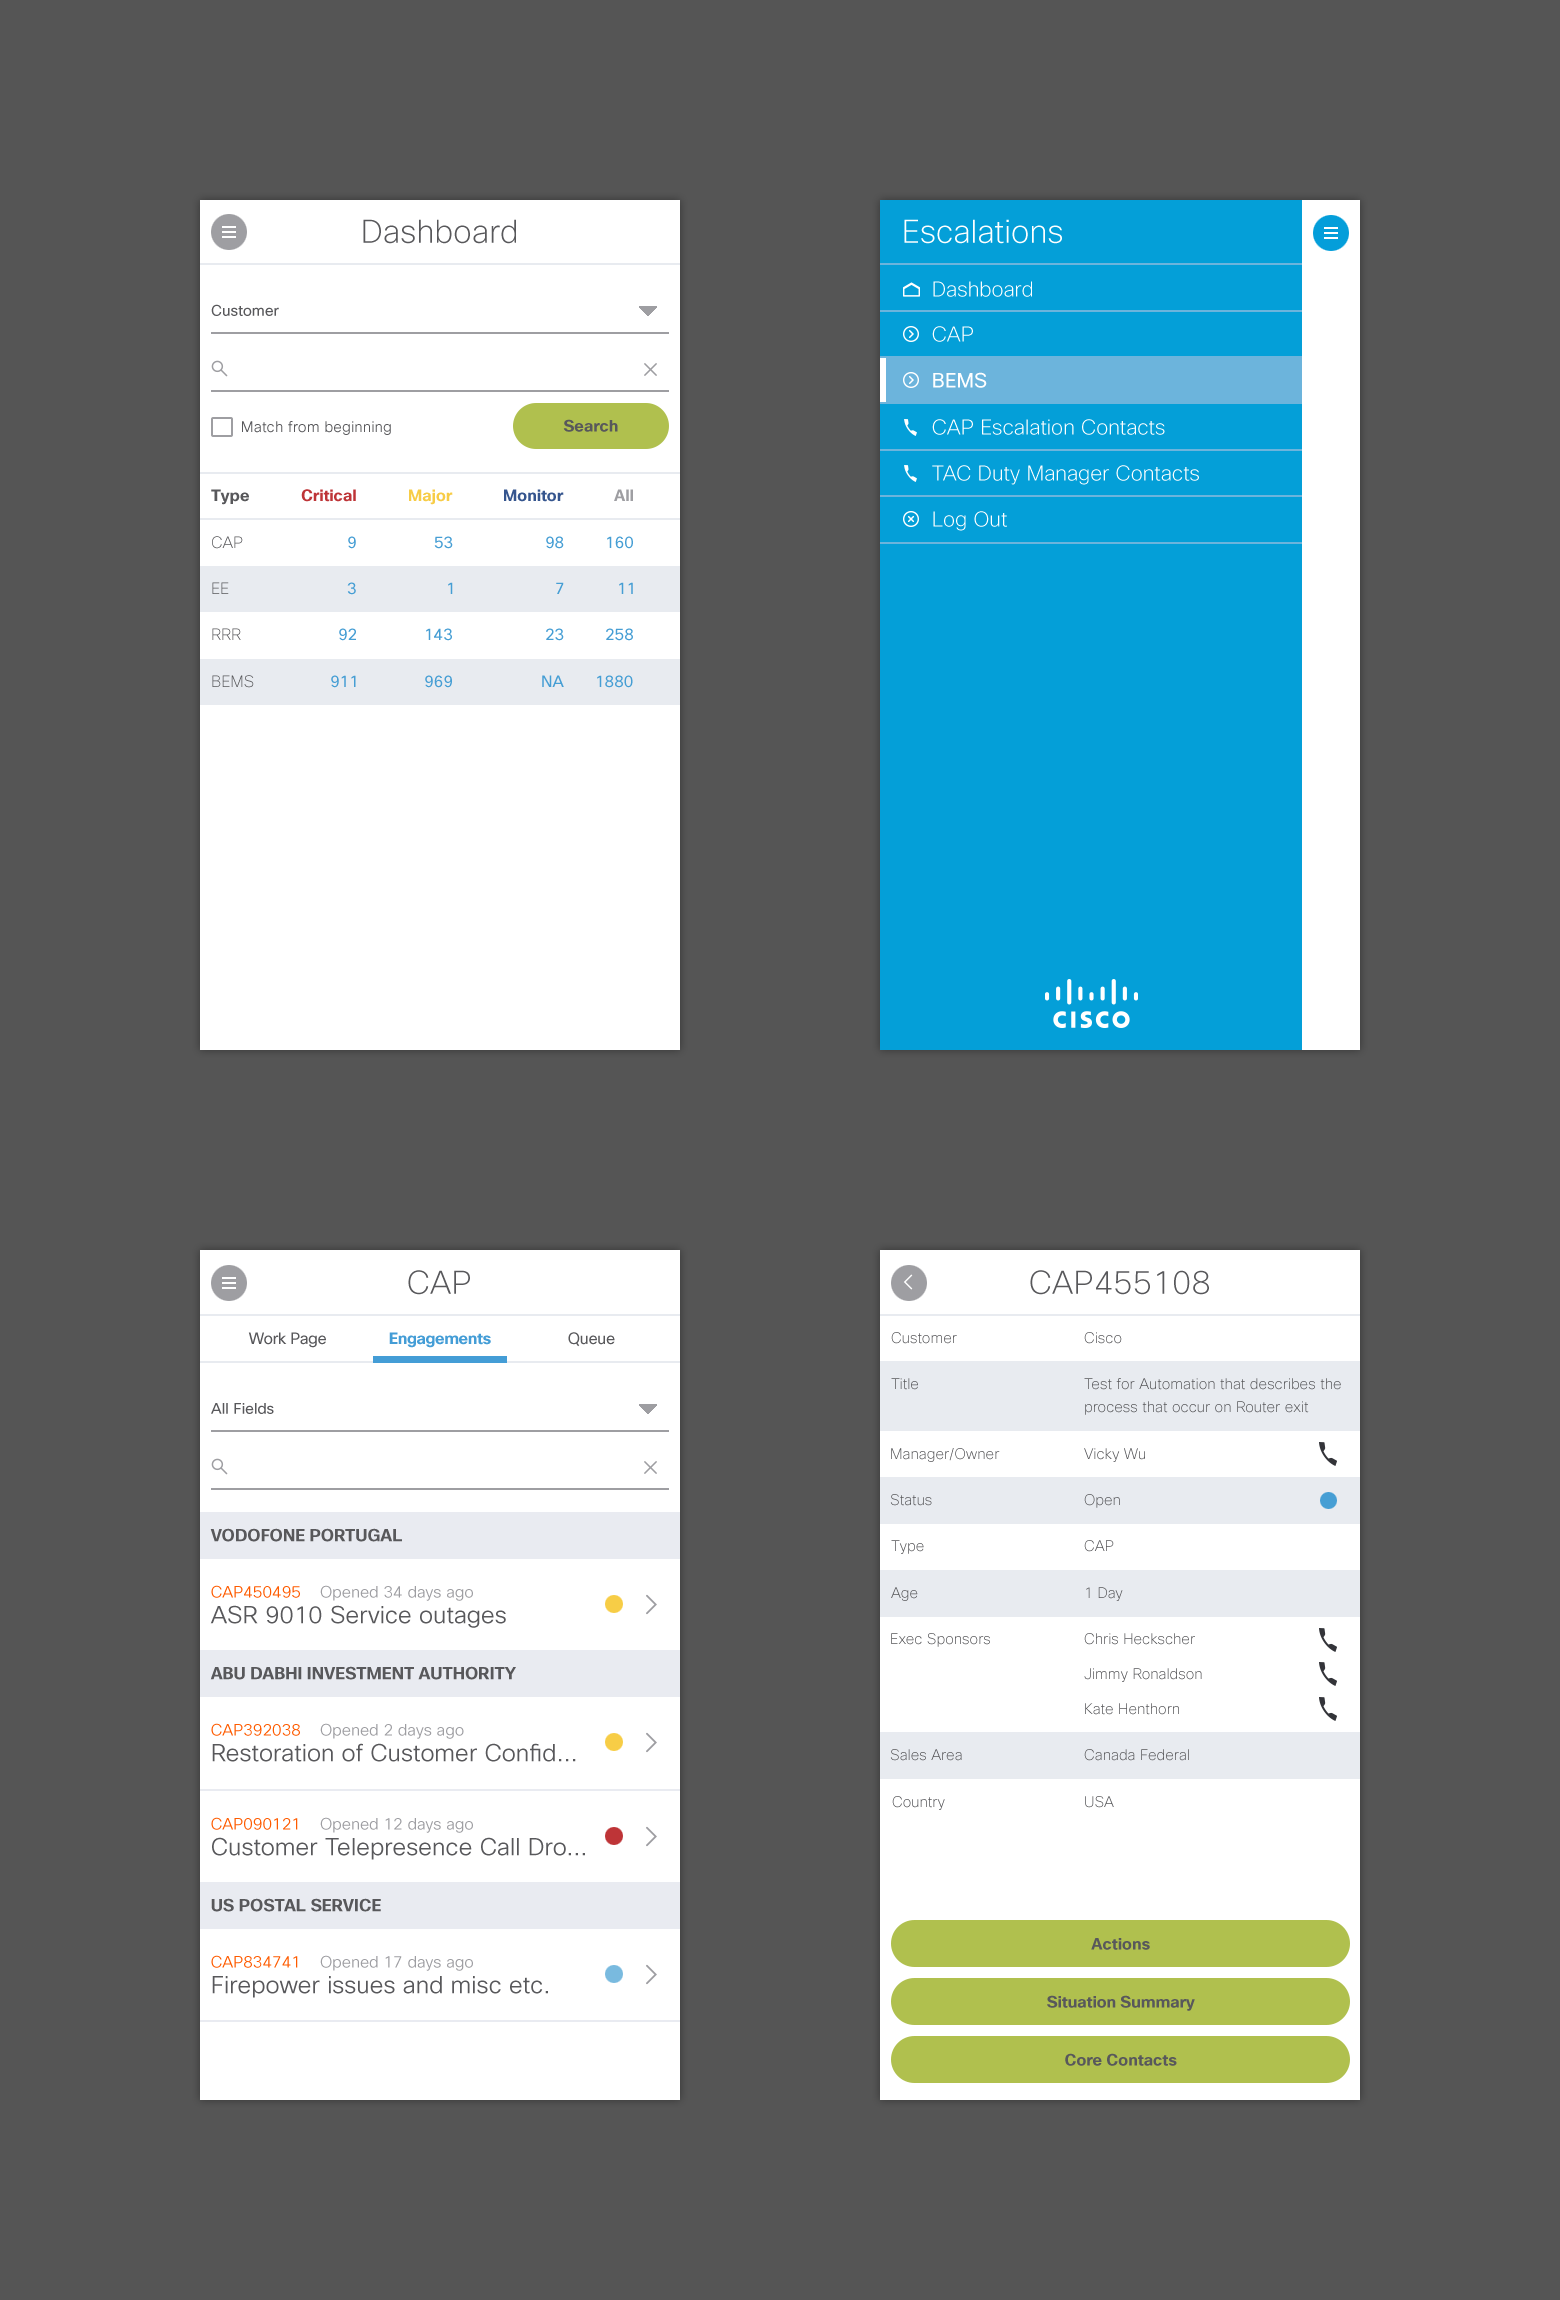 Four atlantic mobile mockups. Each screen depicts a different part of a escalation management system